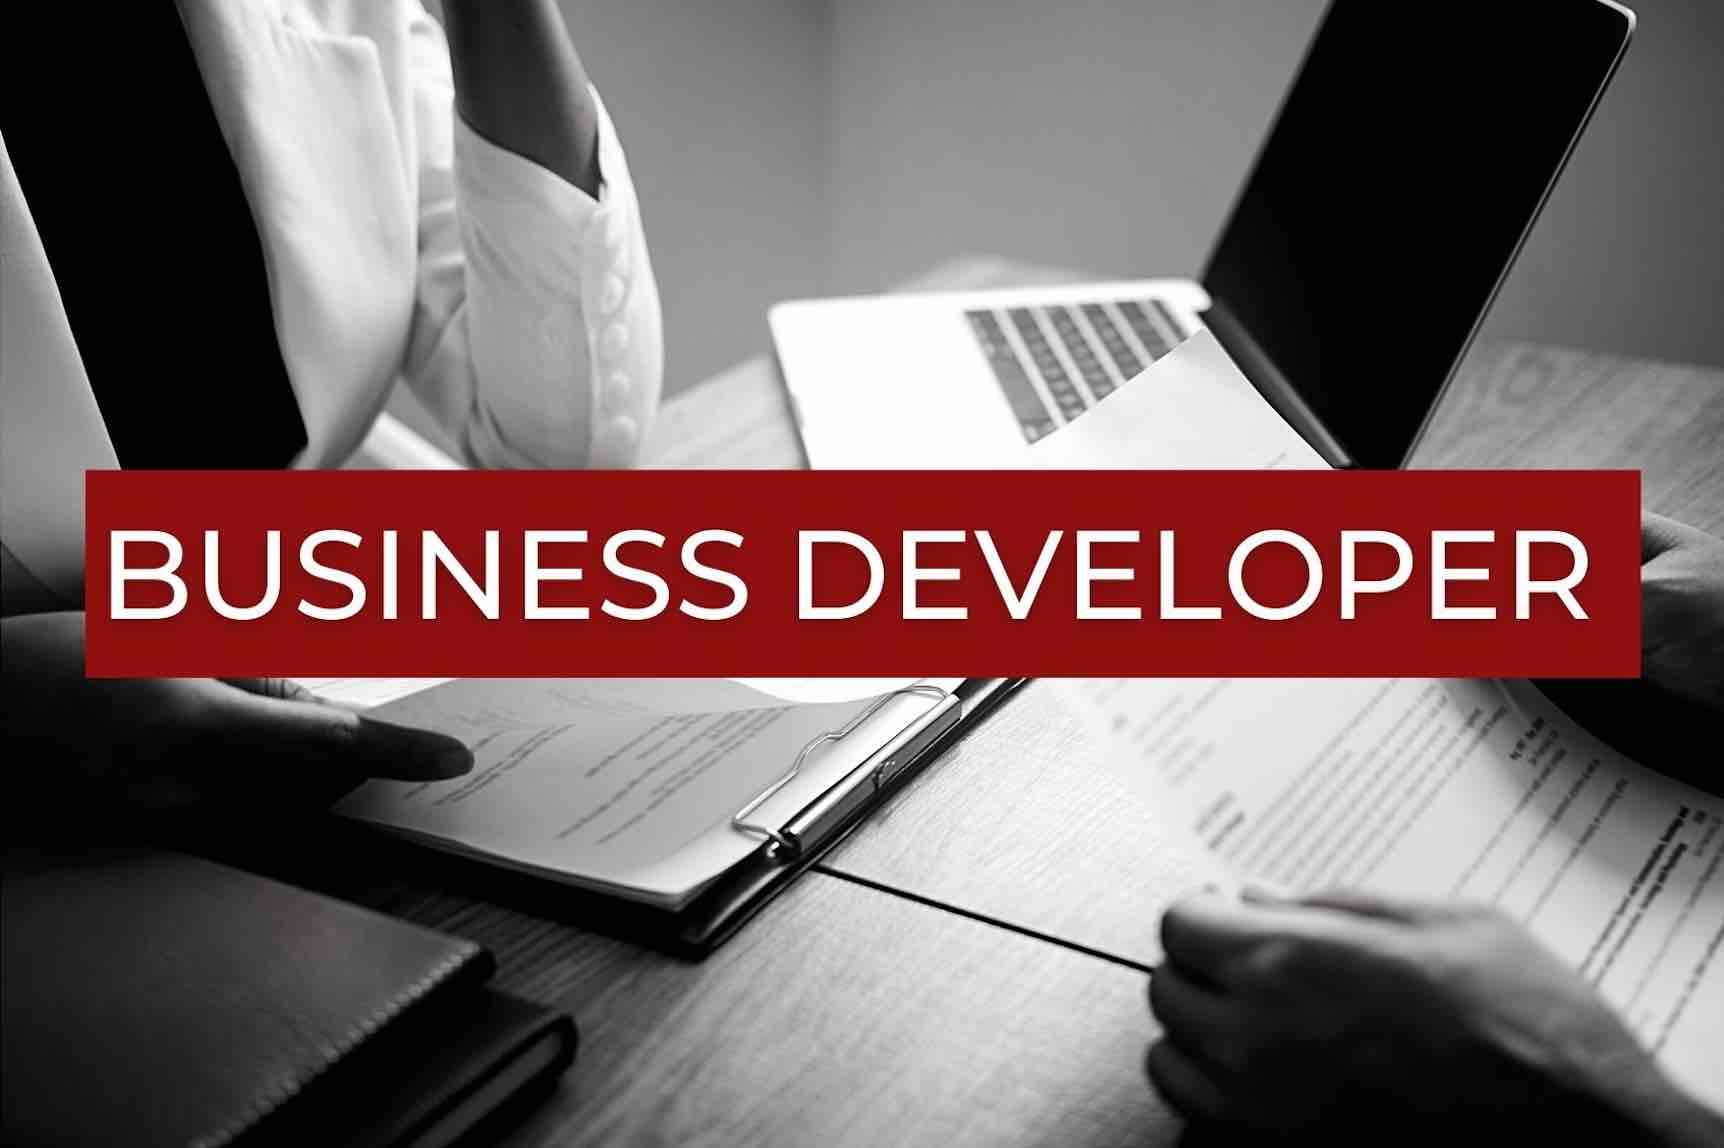 business developer offer